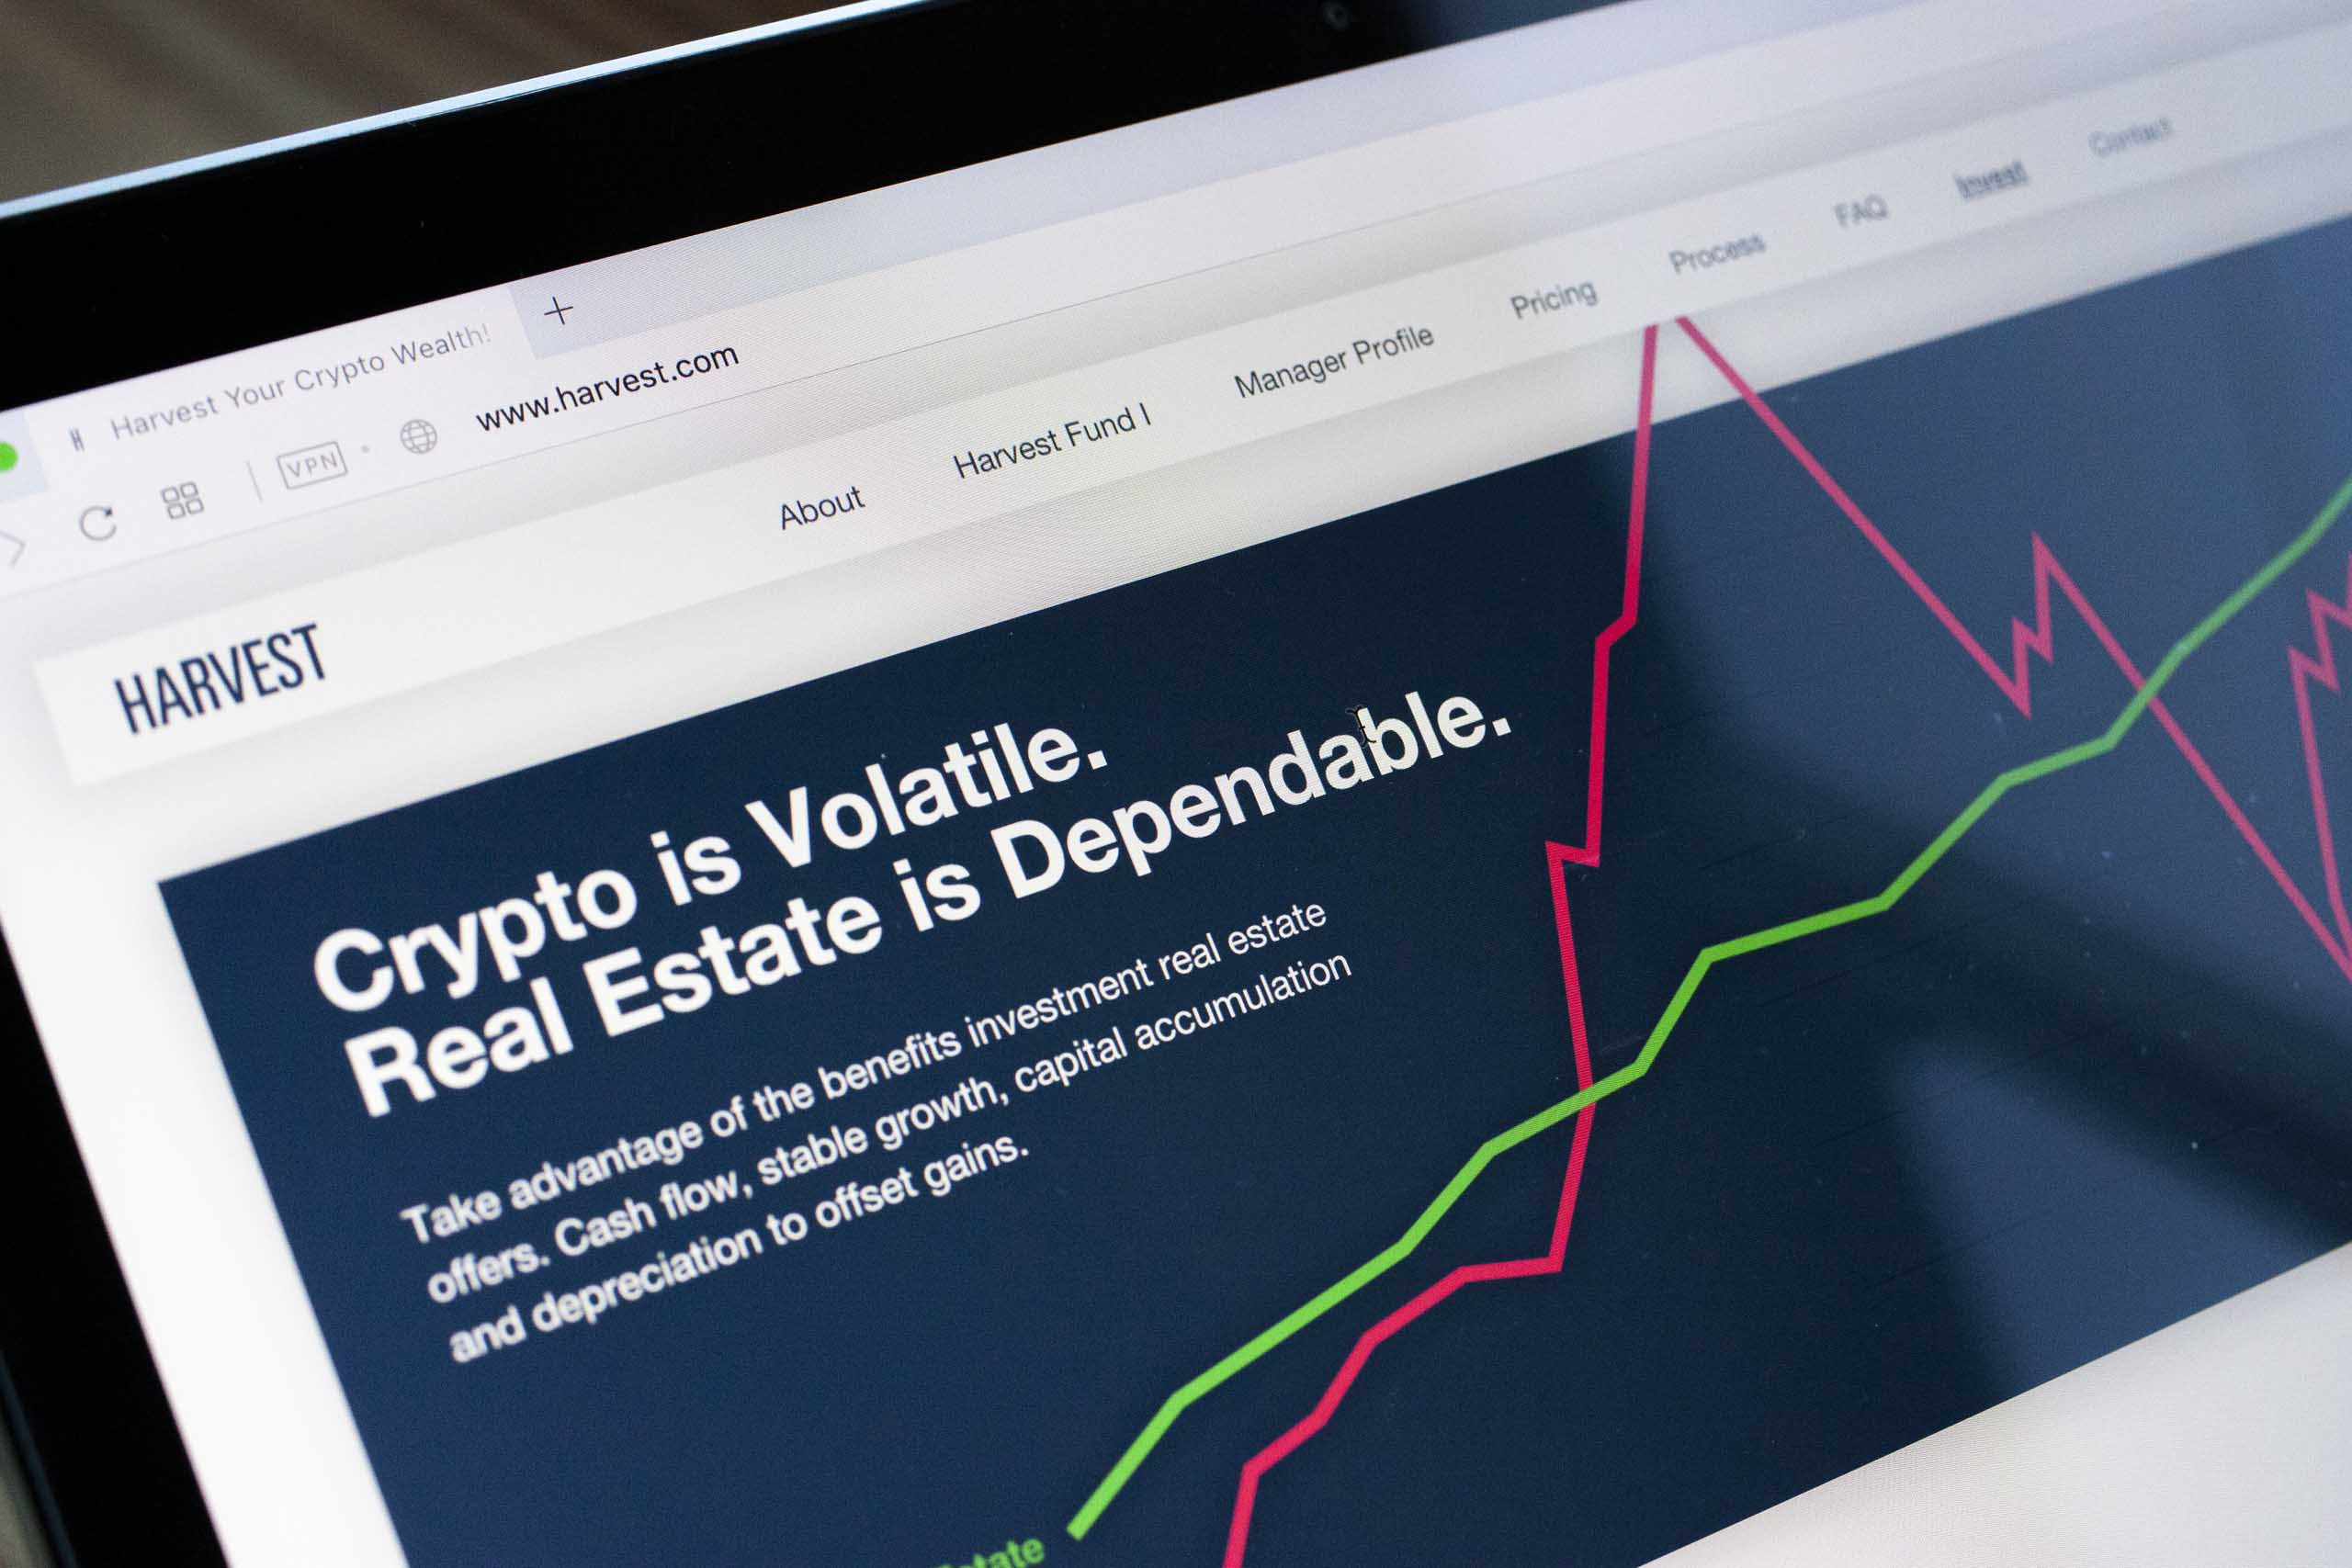 Laptop screen close up photo of the cryptocurrency vs real estate graph — by Yagnyuk.